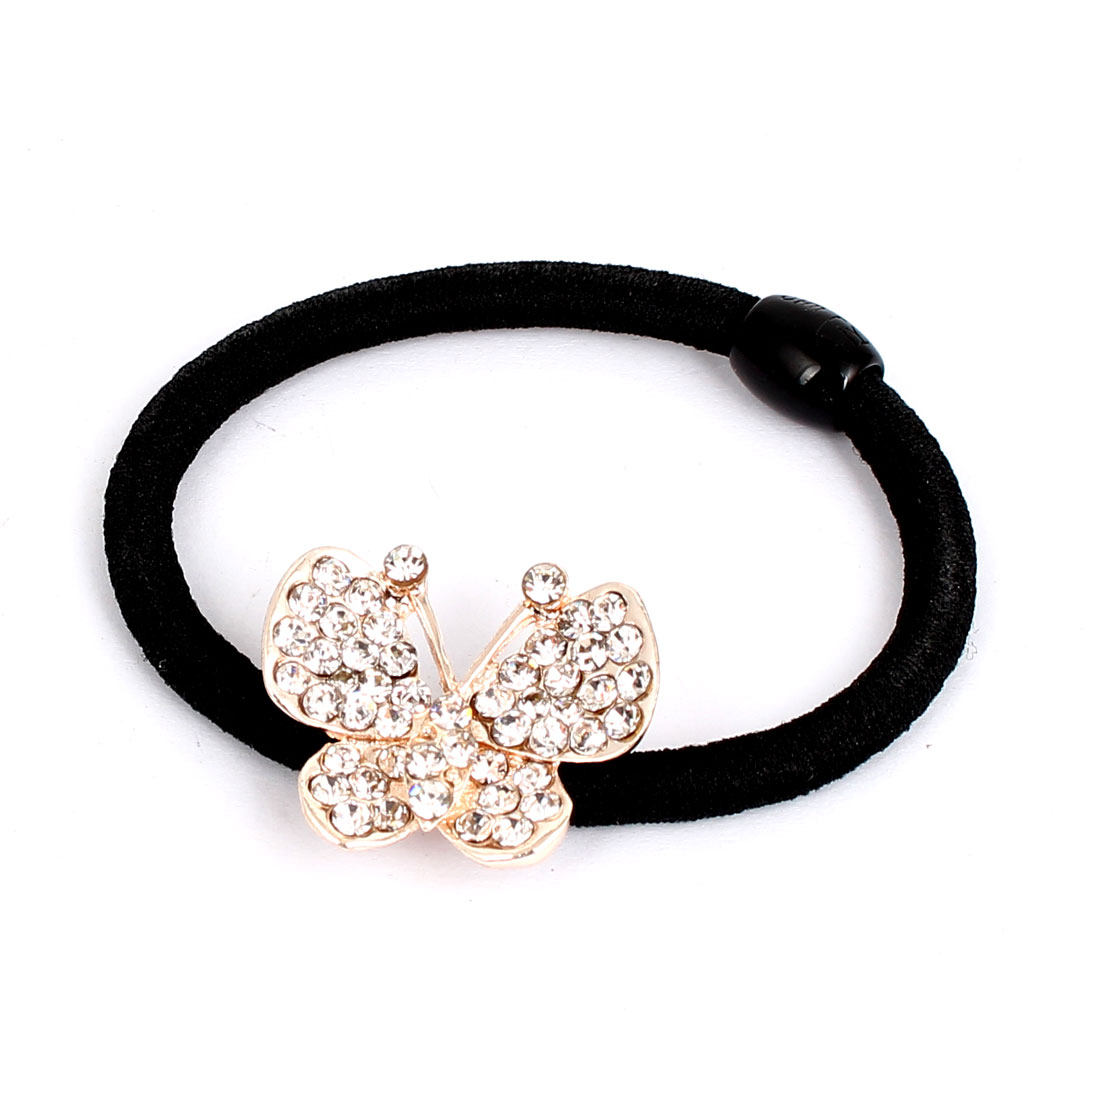 Faux Rhinestone Inlaid Metal Butterfly Decor Women Elastic Hair Ring Rope Band Ponytail Holder Black